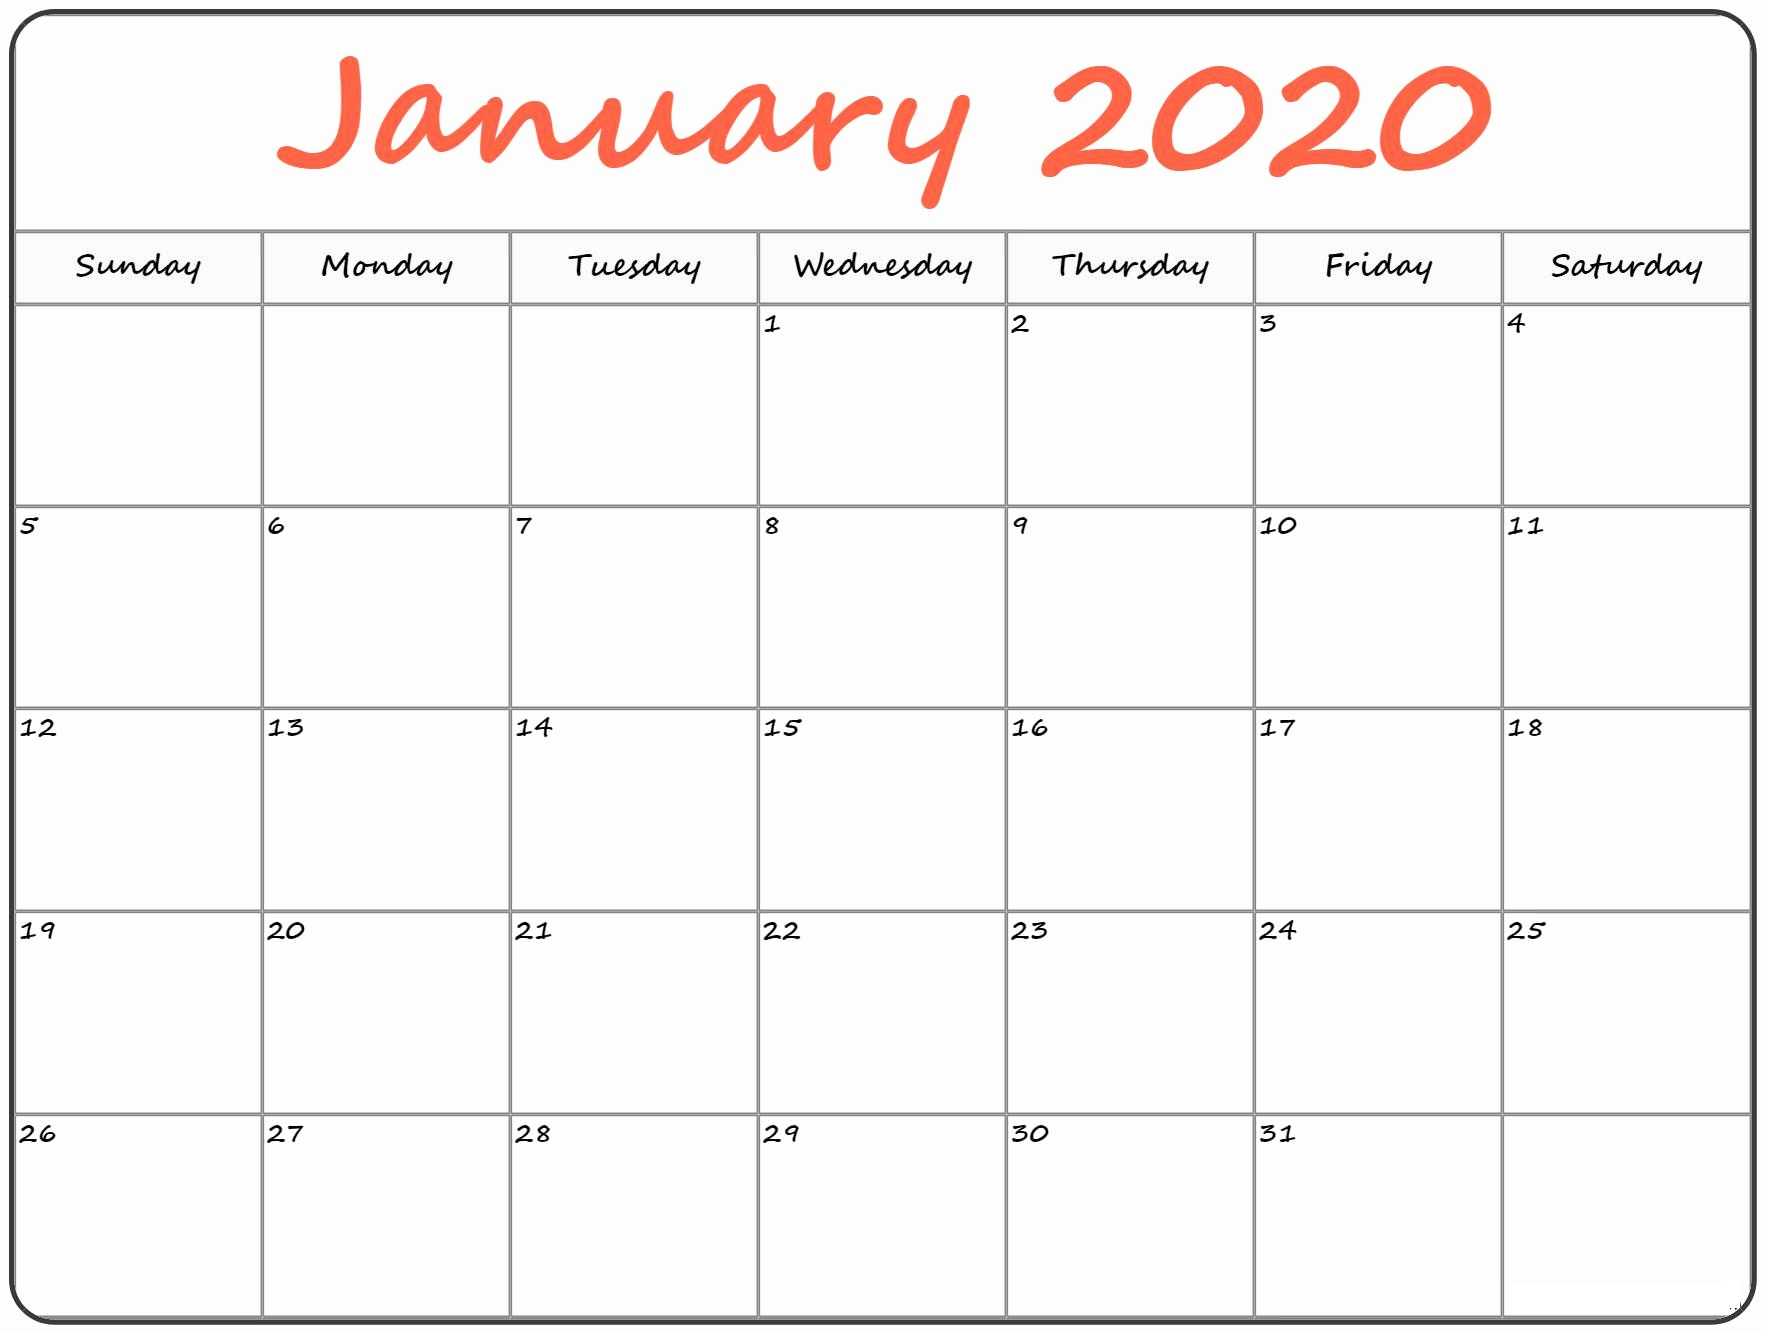 January 2020 Calendar Printable.Cute January 2020 Calendar For Classroom Management Free